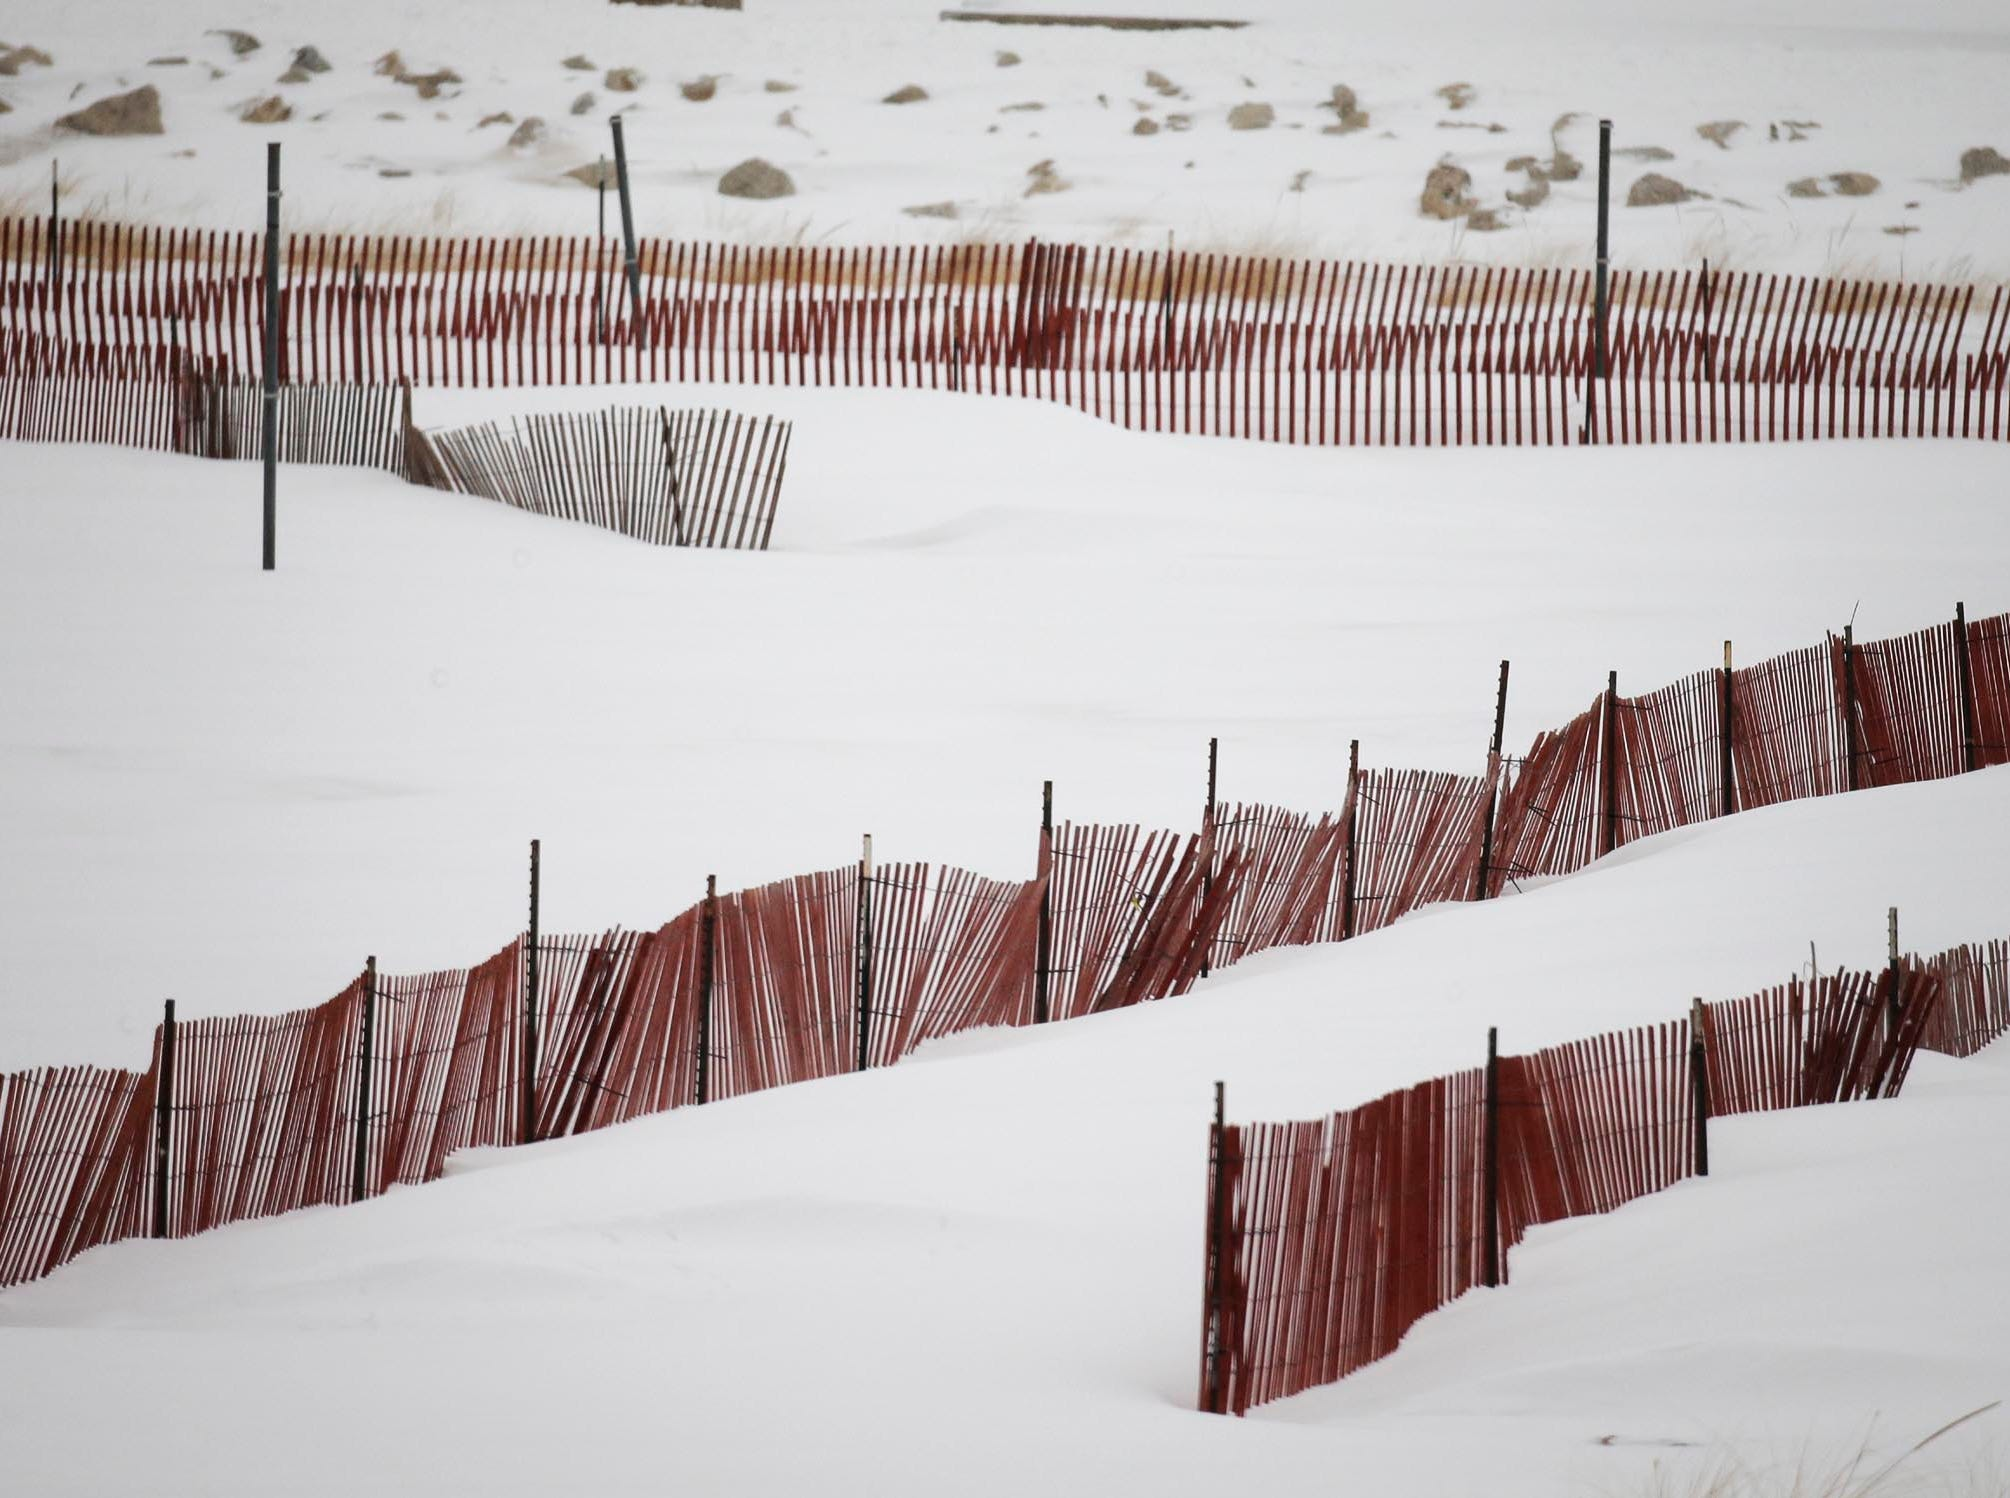 Snow fences contrast with the freshly fallen snow at Deland Park, Tuesday, February 12, 2019, in Sheboygan, Wis.